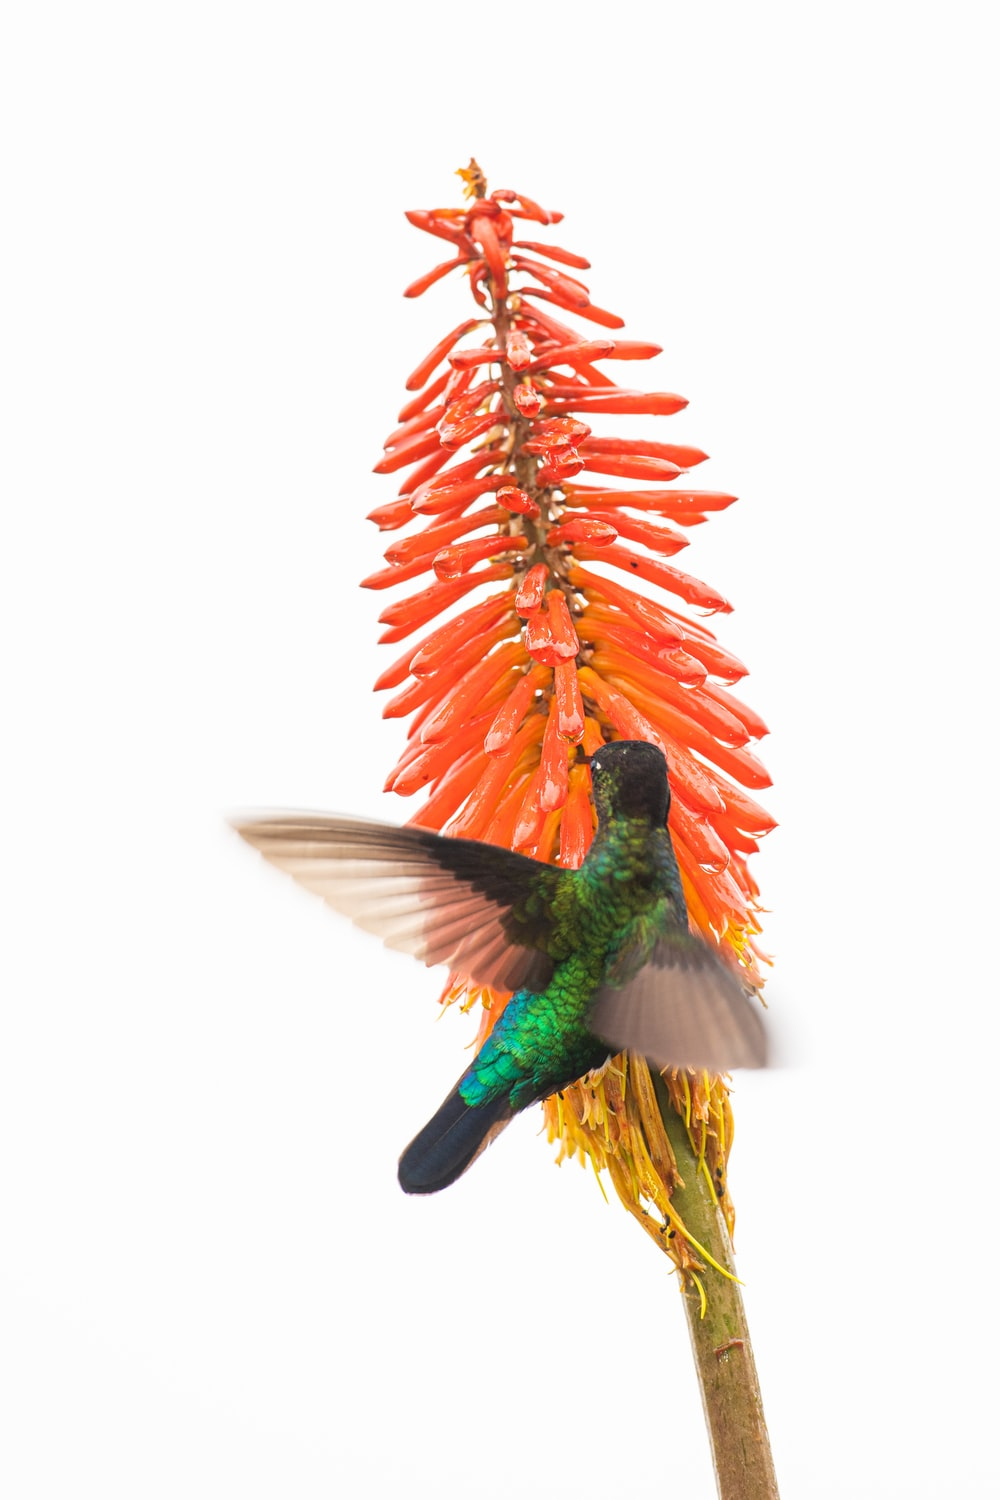 green and red bird flying